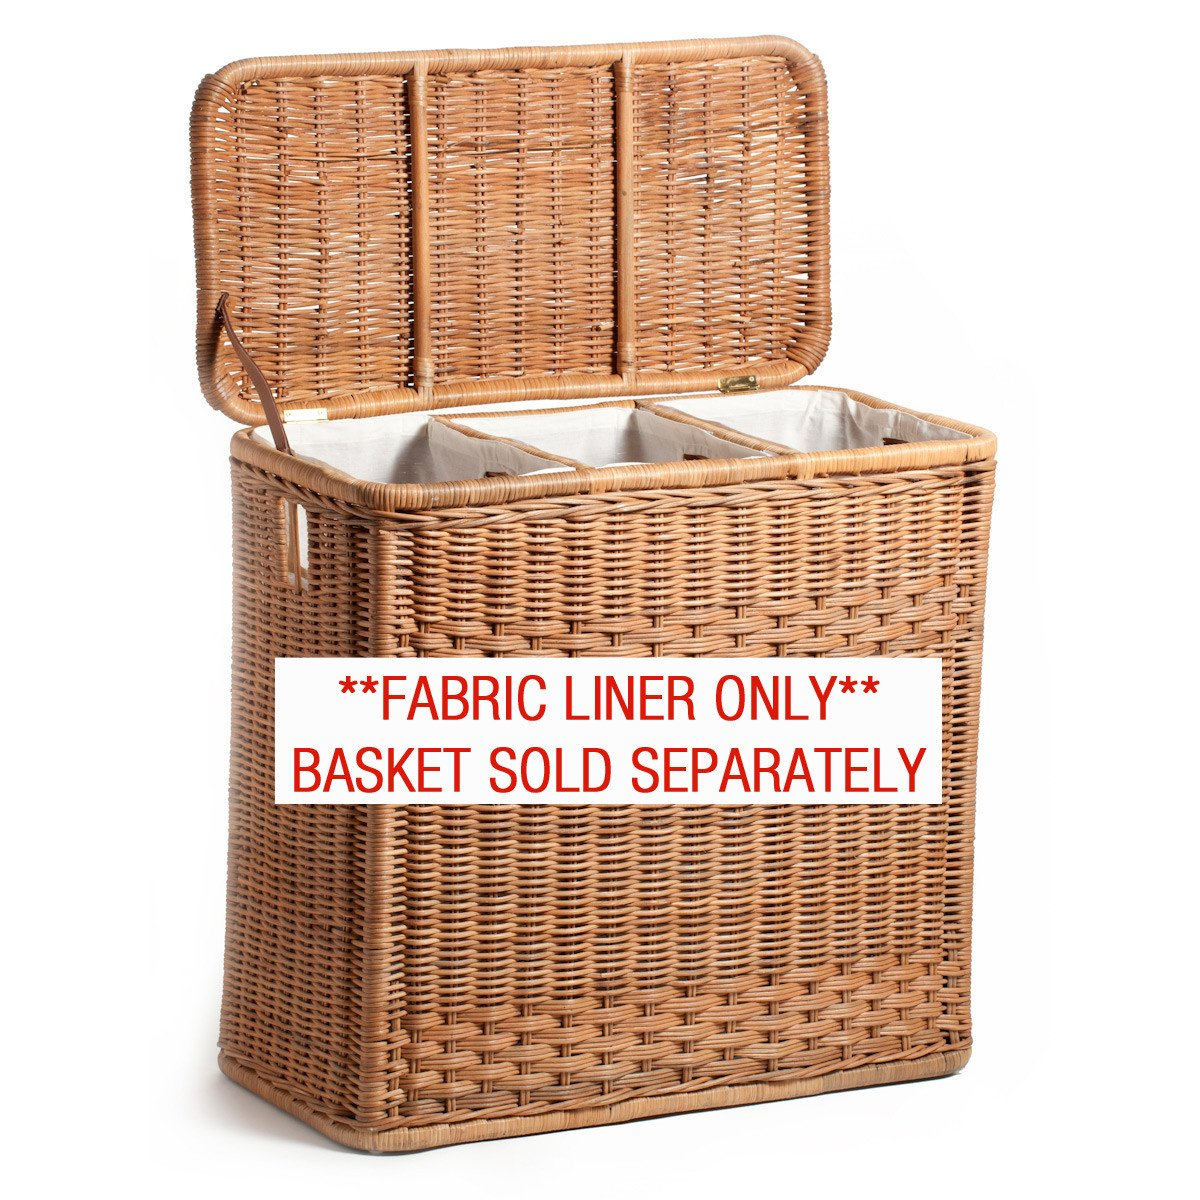 wicker laundry basket fabric liner for 3-compartment wicker laundry hamper, basket sold  separately | the LJACWCK